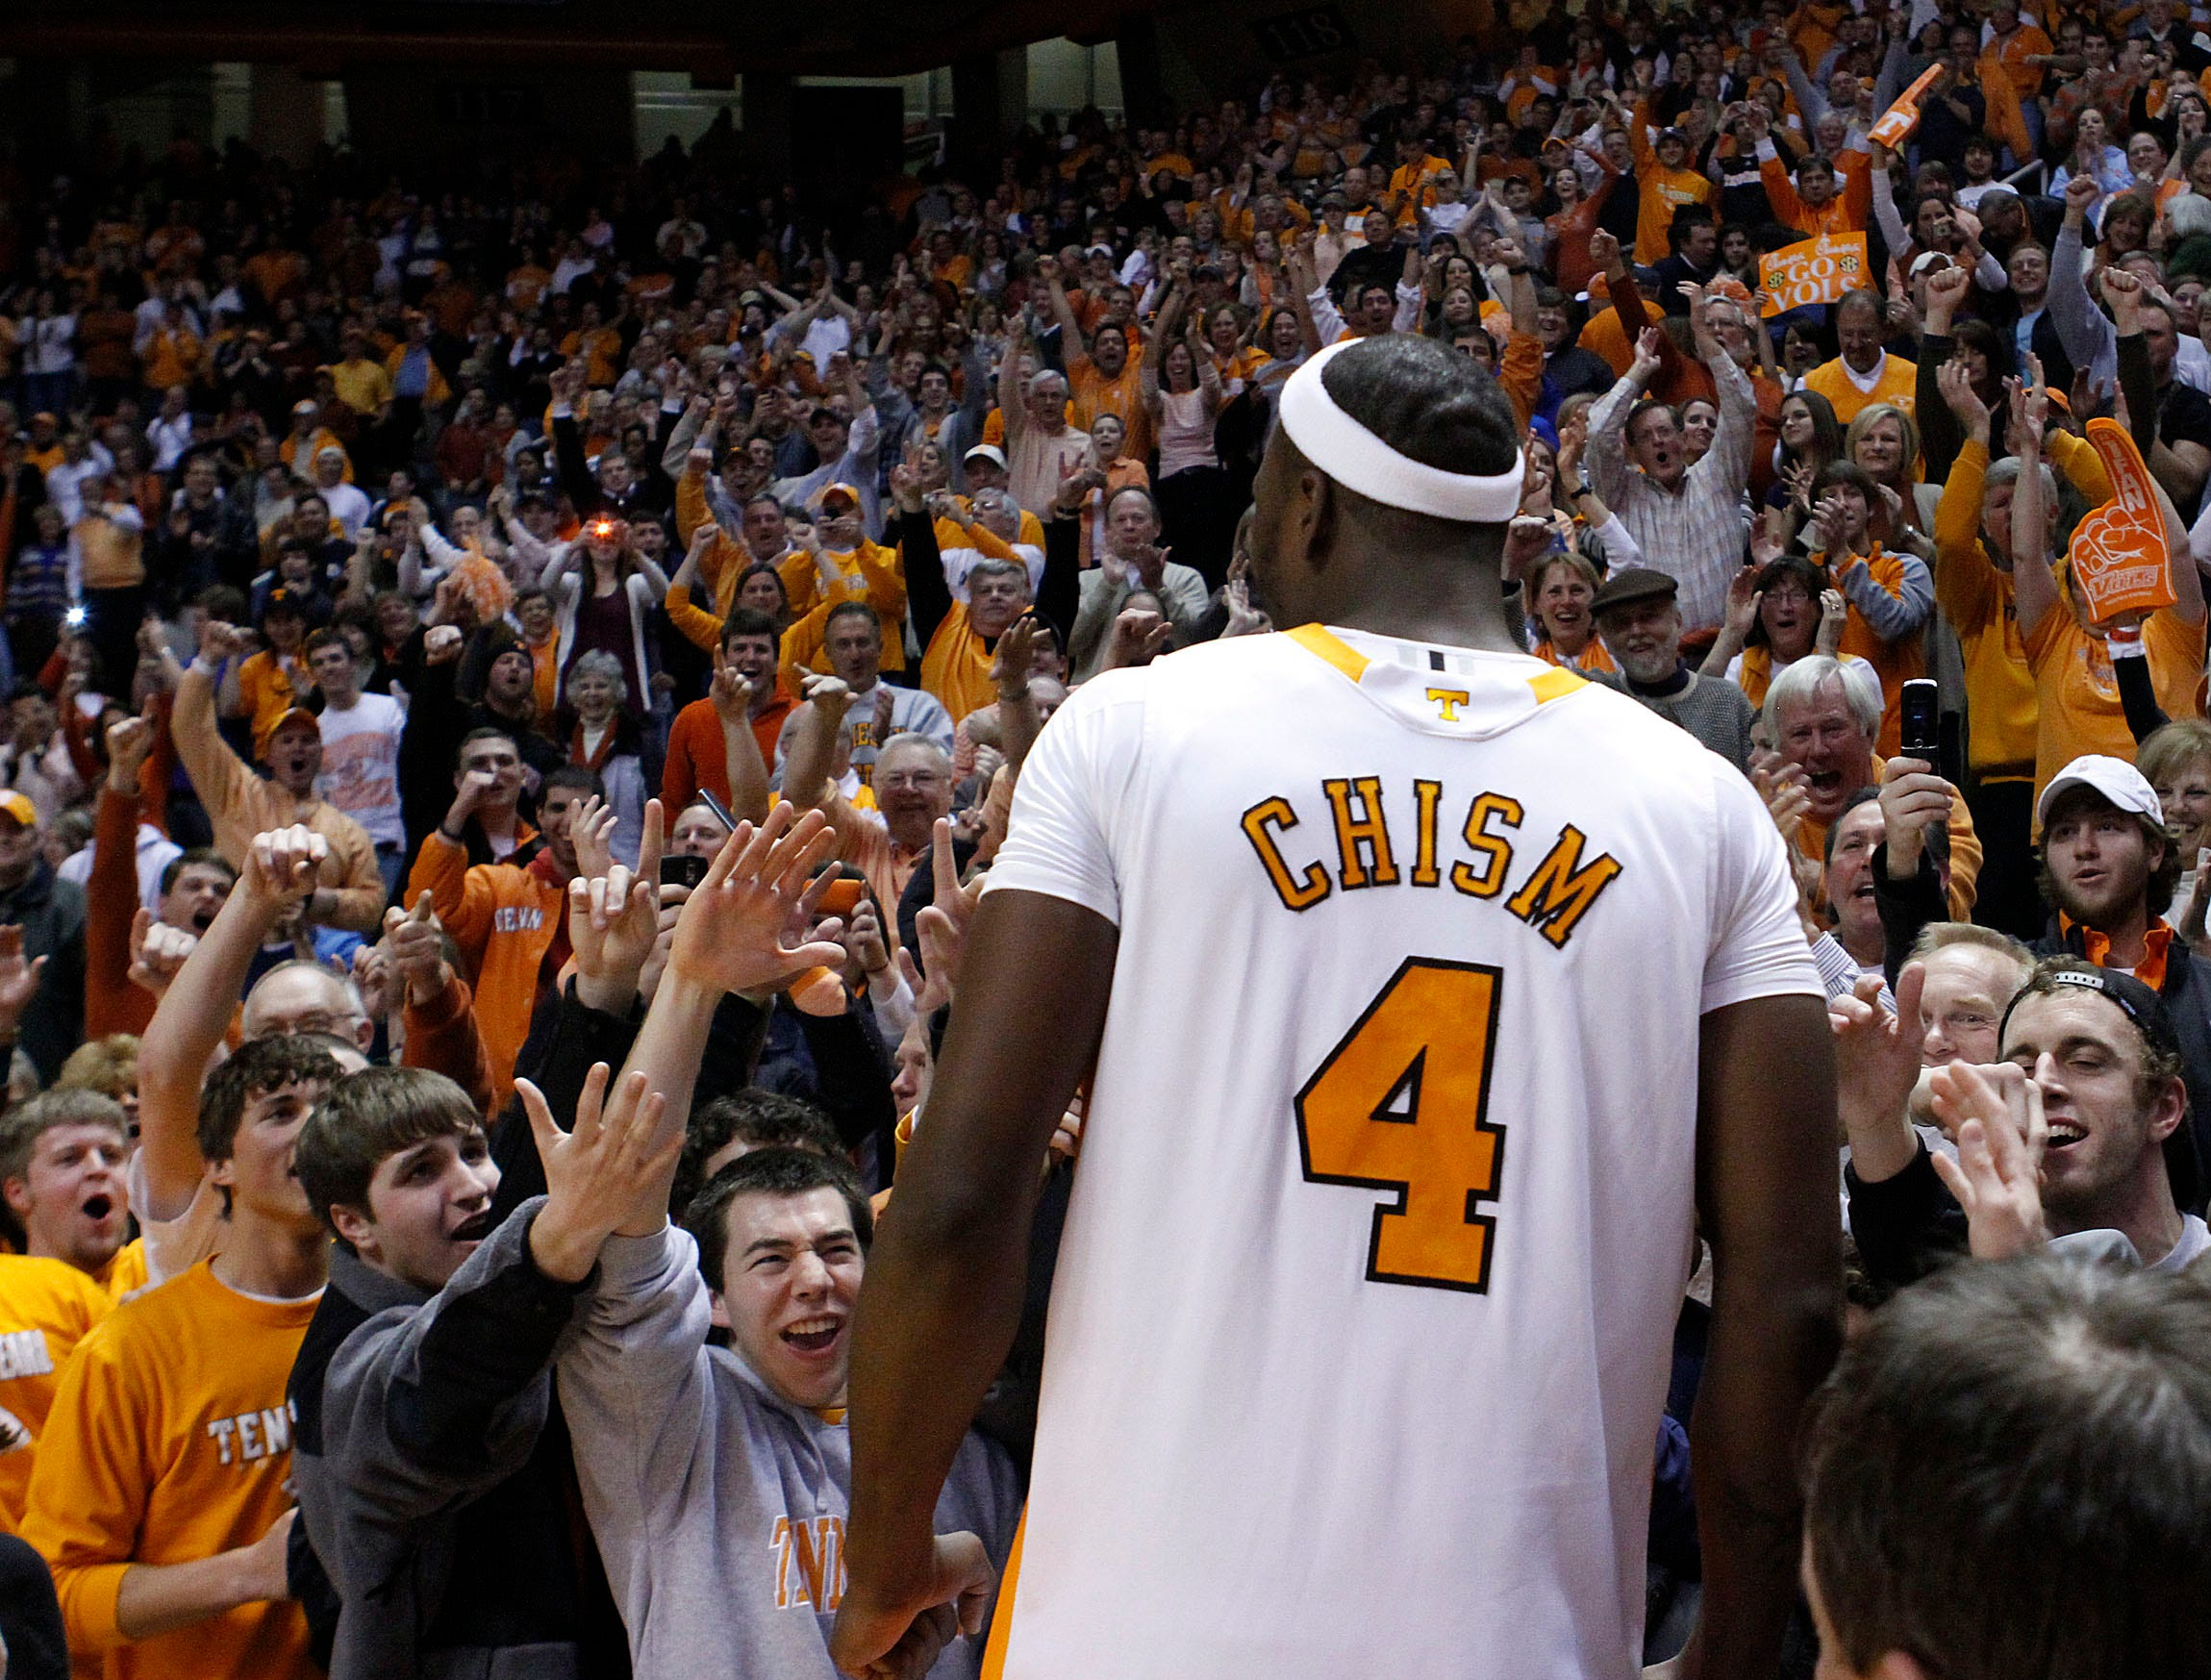 Tennessee's Wayne Chism (4) celebrates with fans after Tennessee's 76-68 win over Kansas in an NCAA college basketball game Sunday, Jan. 10, 2010, in Knoxville, Tenn.